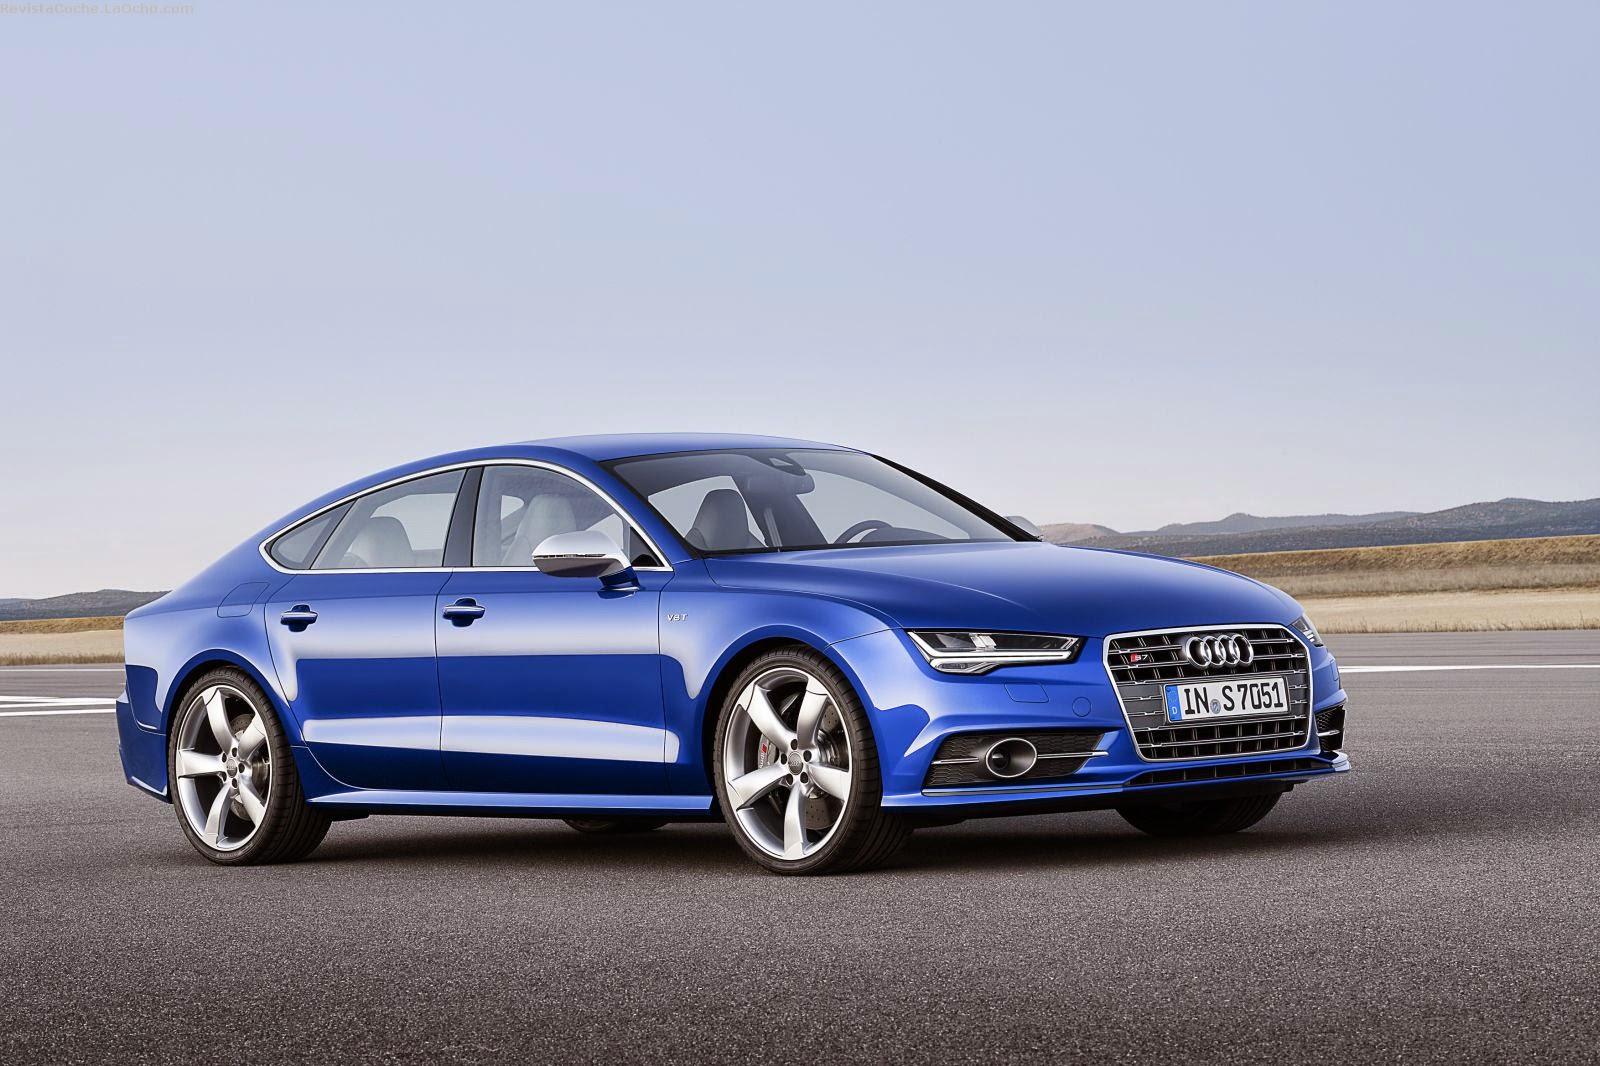 revista coche nuevo audi a7 sportback 2015. Black Bedroom Furniture Sets. Home Design Ideas